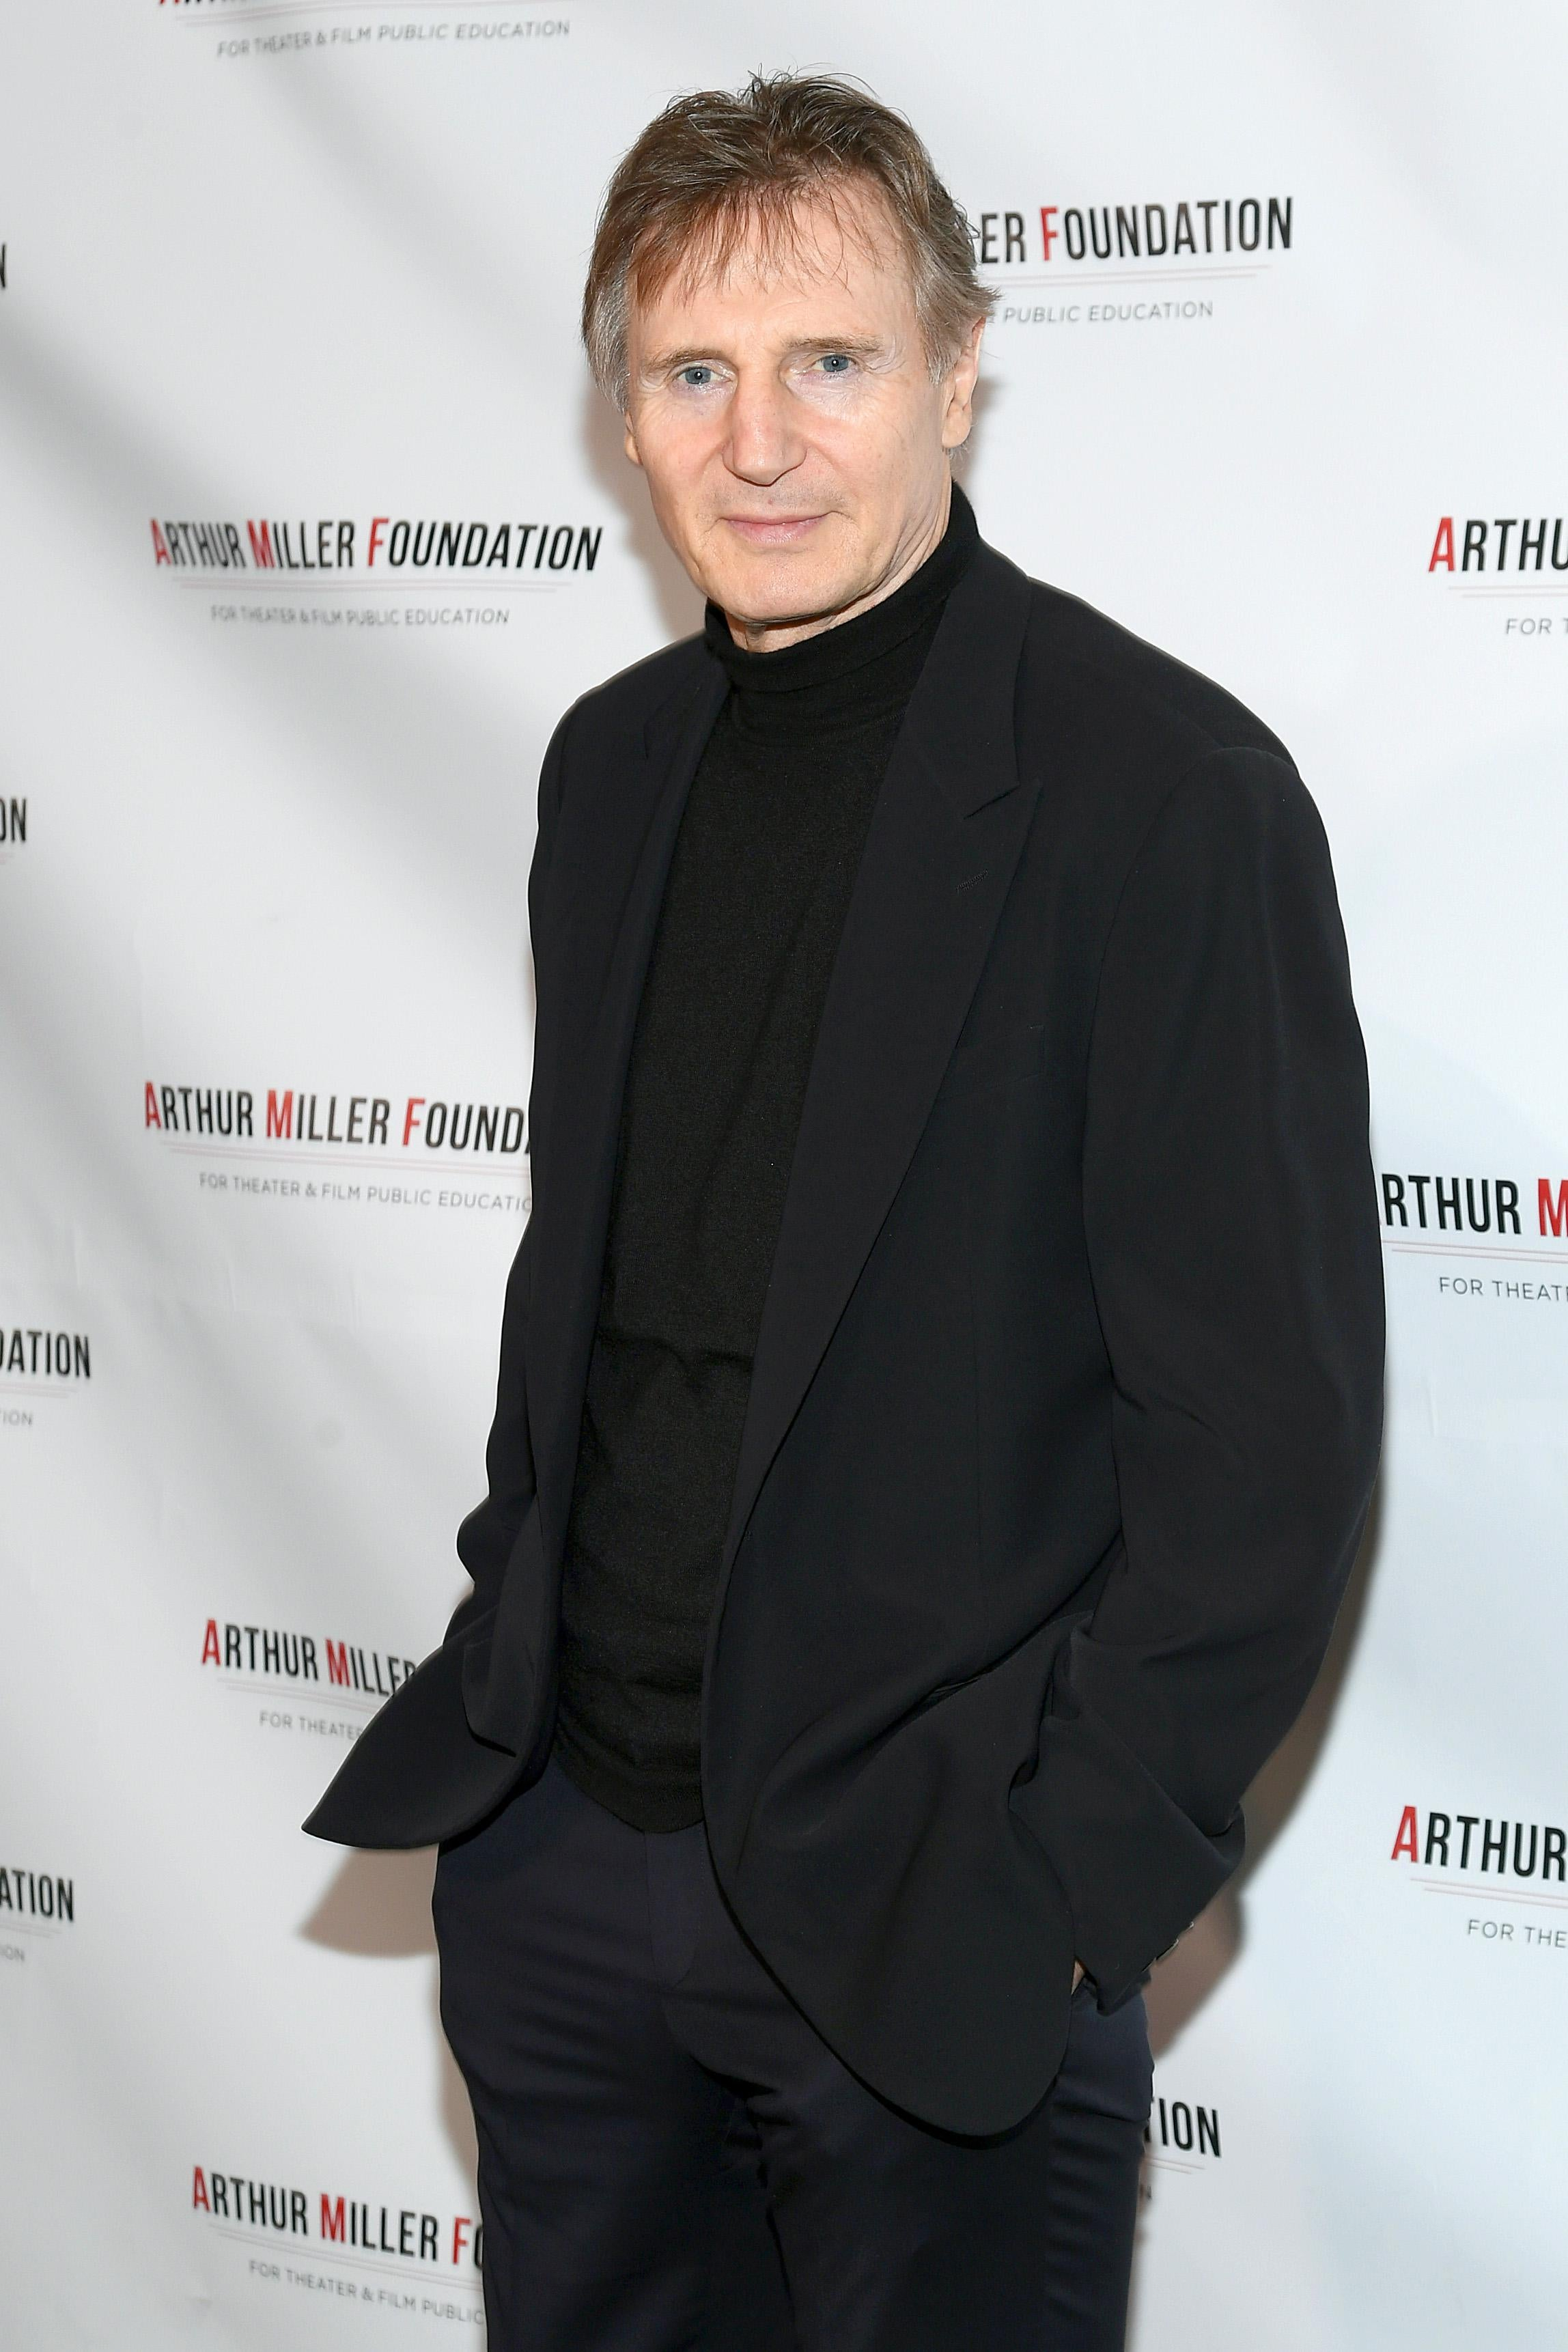 Man in black suit and black dress shirt poses for the camera.